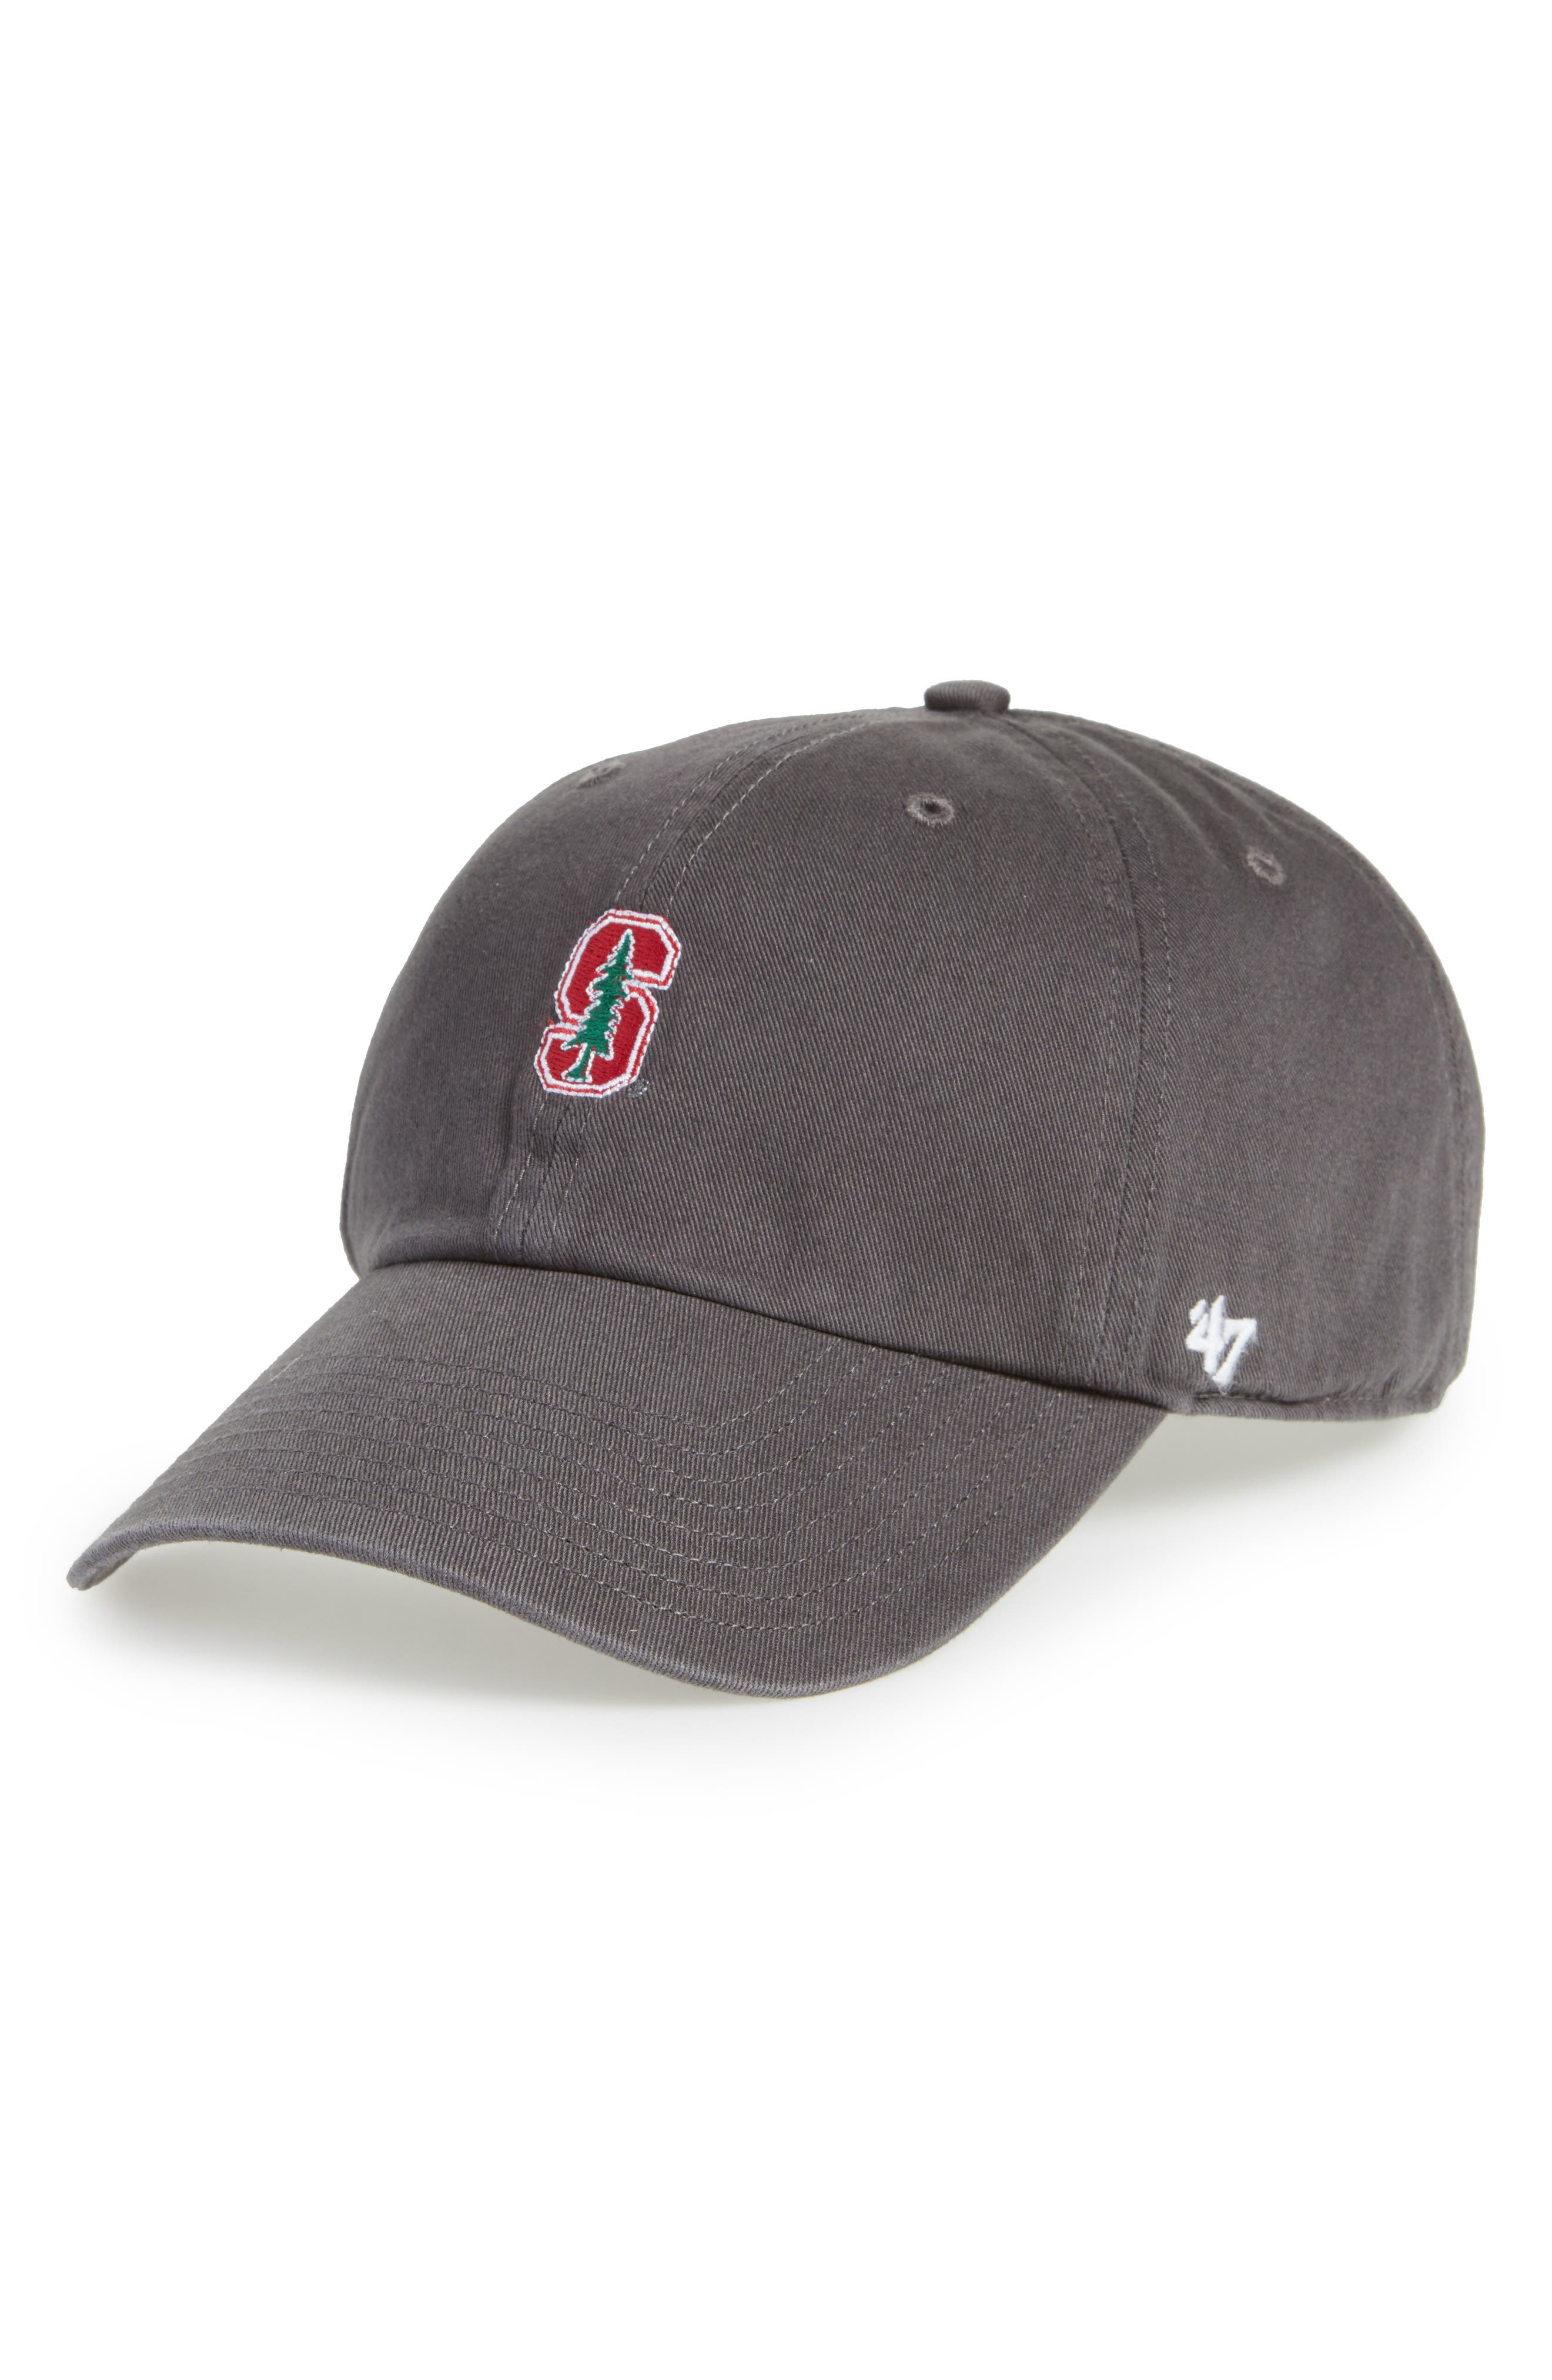 Collegiate Clean-Up Stanford Cardinals Ball Cap,                             Main thumbnail 1, color,                             Stanford Cardinal